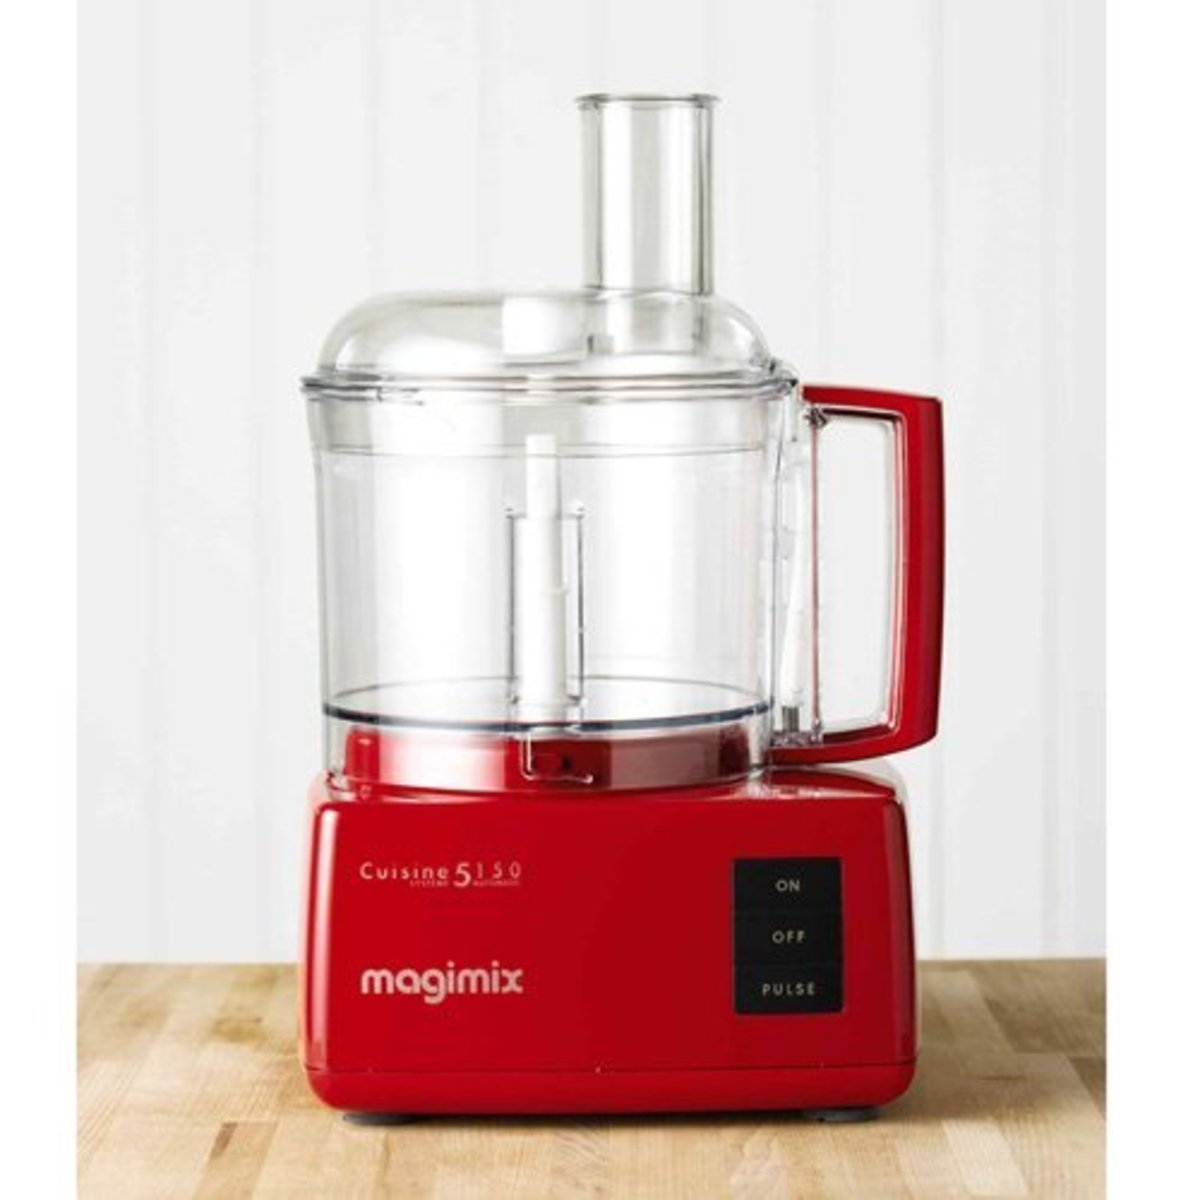 Best food processor magimix cuisine systeme 5150 hubpages for Cuisine 4100 magimix